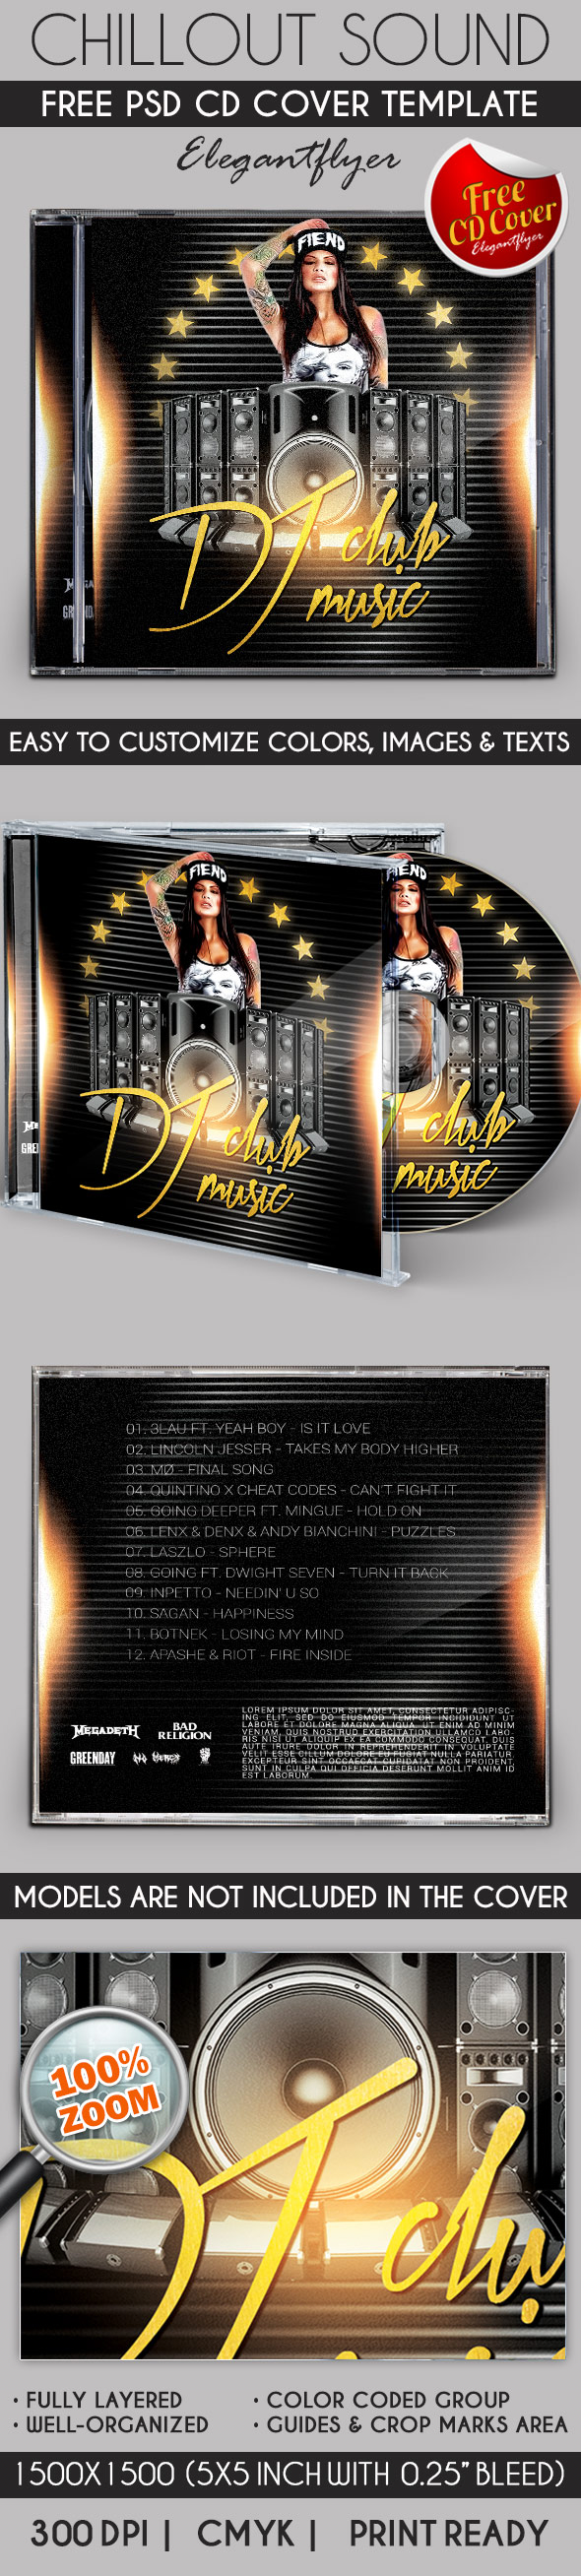 Pin Na Doske Free Cd Dvd Cover Templates